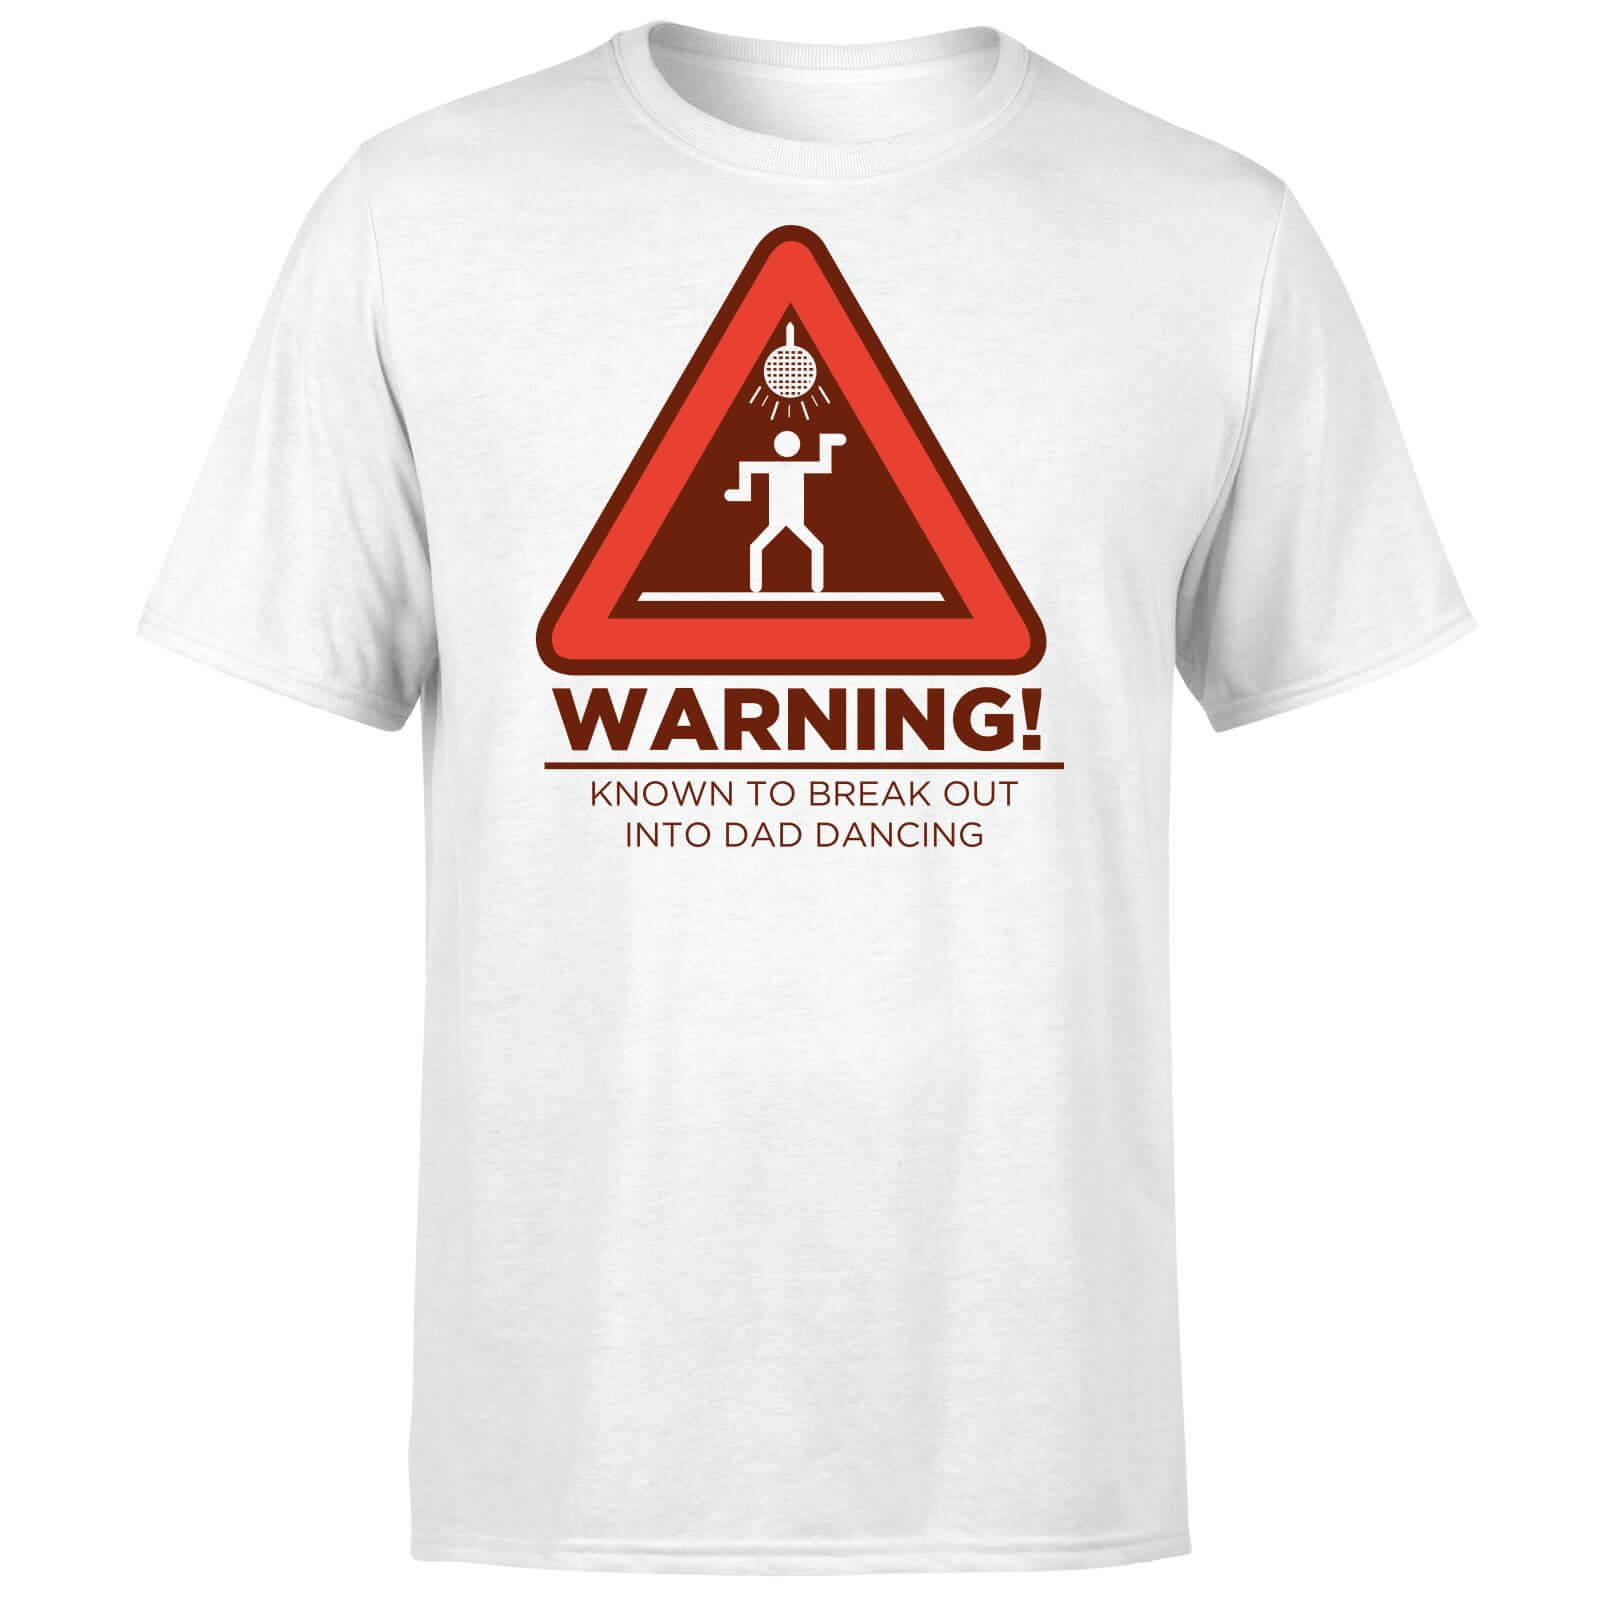 Warning Dad Dancing T-Shirt - White